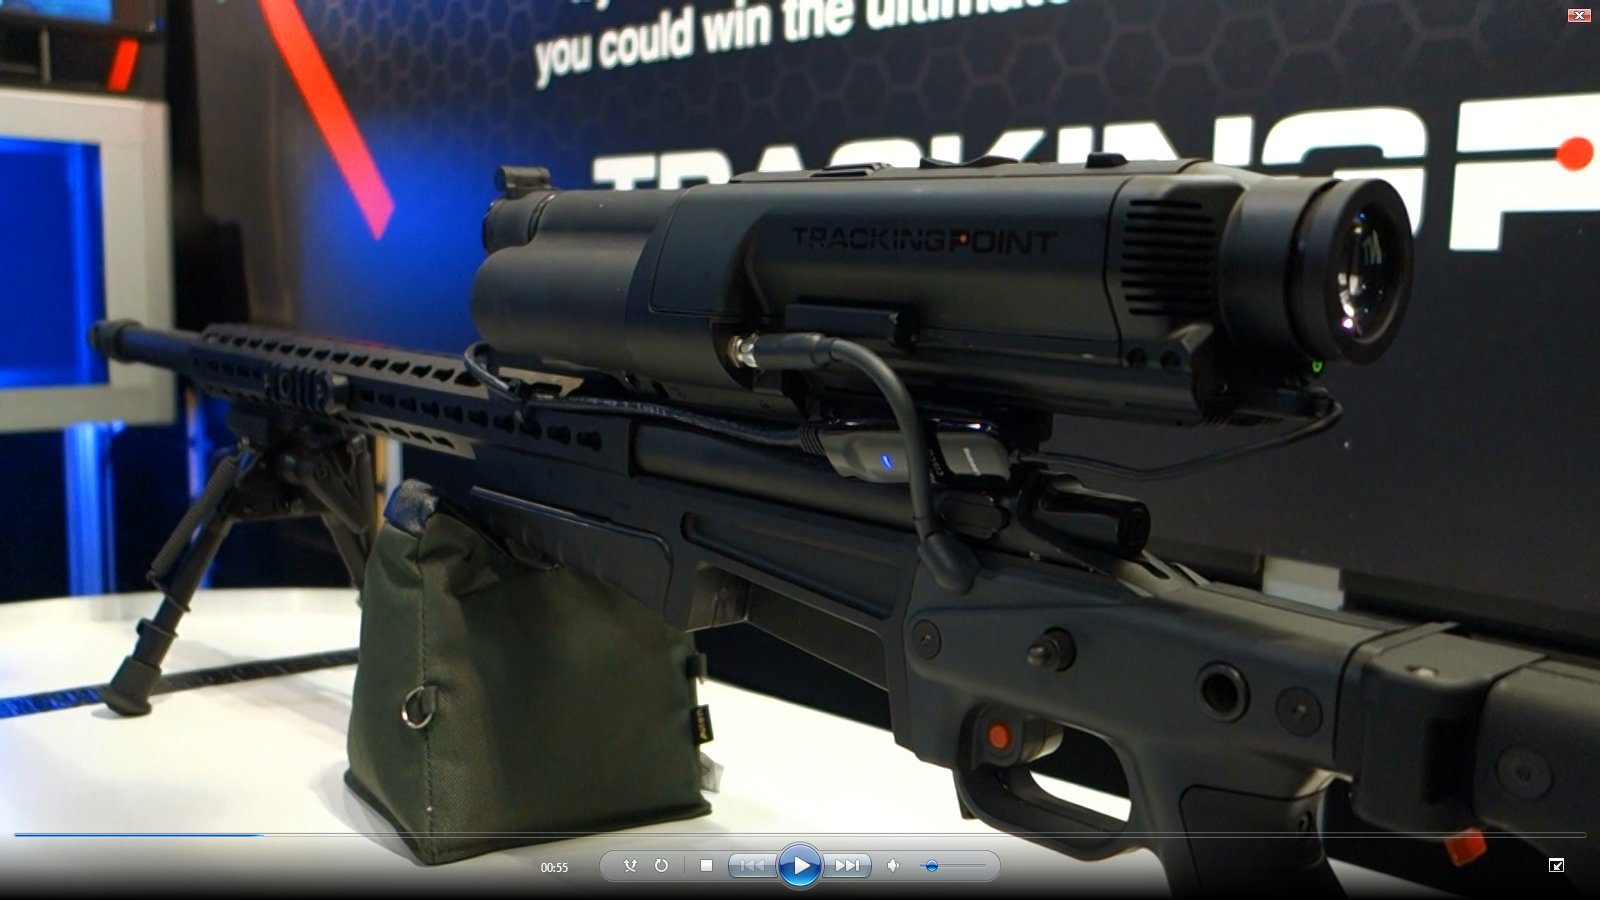 TrackingPoint XactSystem Precision Guided Firearm PGF Integrated Networked Tracking Scope Exhibit Floor SHOT Show 2013 David Crane DefenseReview.com DR 5 TrackingPoint XactSystem Precision Guided Firearm (PGF) Sniper Rifle Package with Surgeon Rifle and Integrated Networked Tracking Scope/Smart Scope Explained in Detail (Video!)